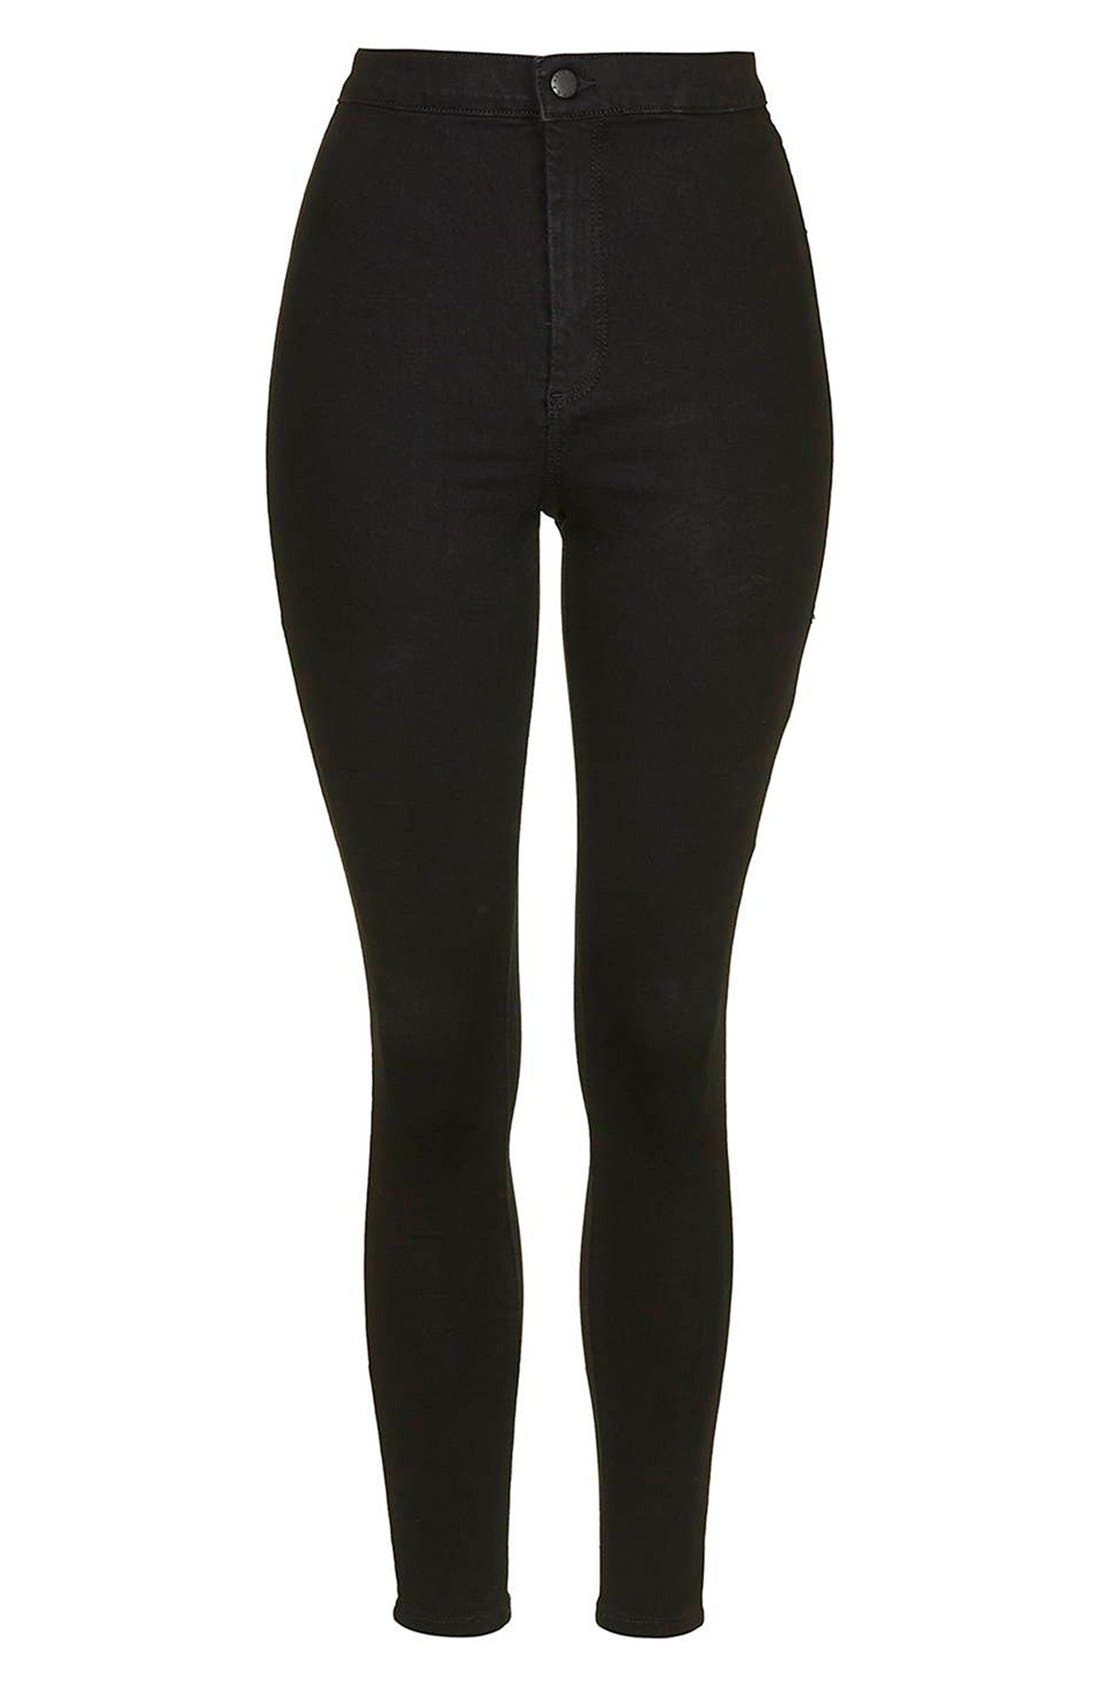 Alternate Image 4  - Topshop 'Joni - Holding Power' High Waist Skinny Jeans (Tall)